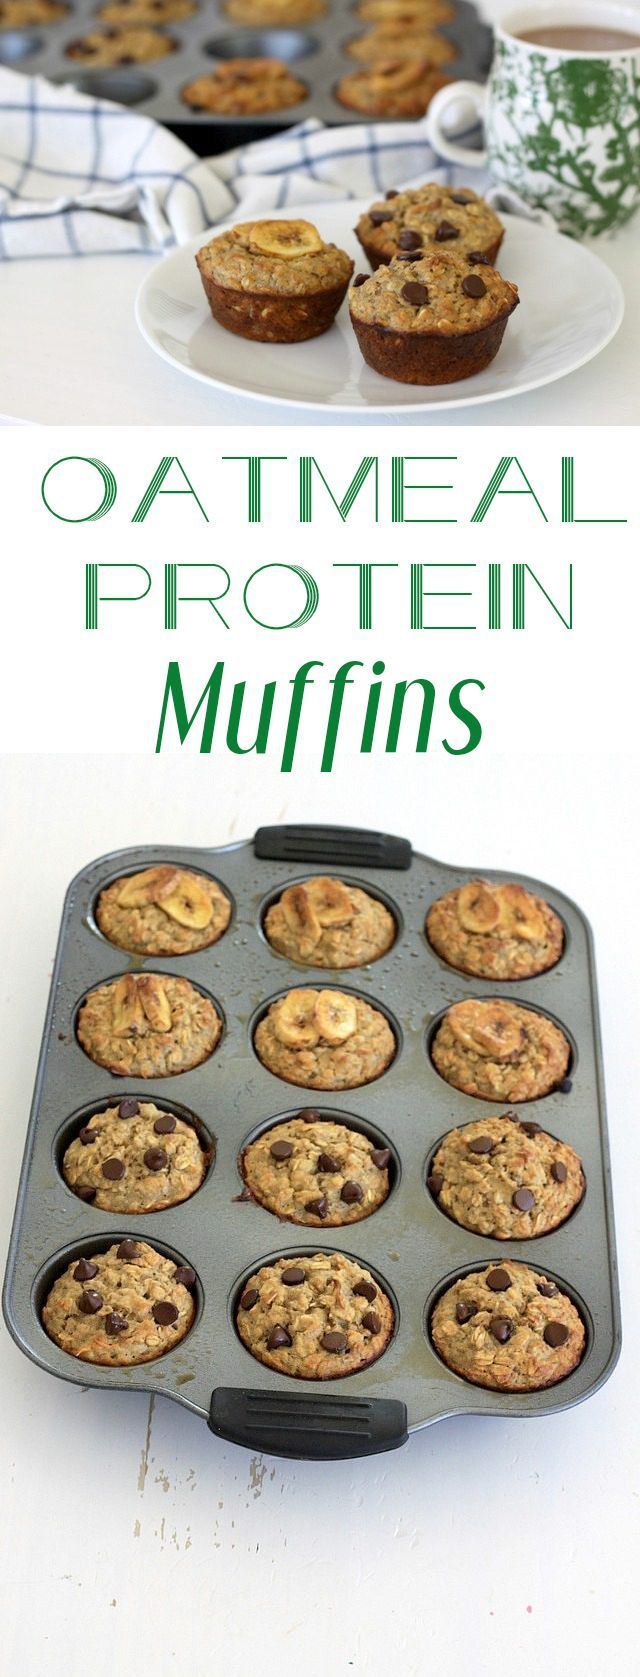 We are obsessed with these one-bowl oatmeal protein muffins! This recipe is low in sugar, flexible with substitutions and includes nut butter, chia seeds and flaxseeds (all protein sources). And they are delicious! Recipe here: http://www.ehow.com/how_5680530_make-oatmeal-protein-muffins.html?utm_source=pinterest.com&utm_medium=referral&utm_content=freestyle&utm_campaign=fanpage